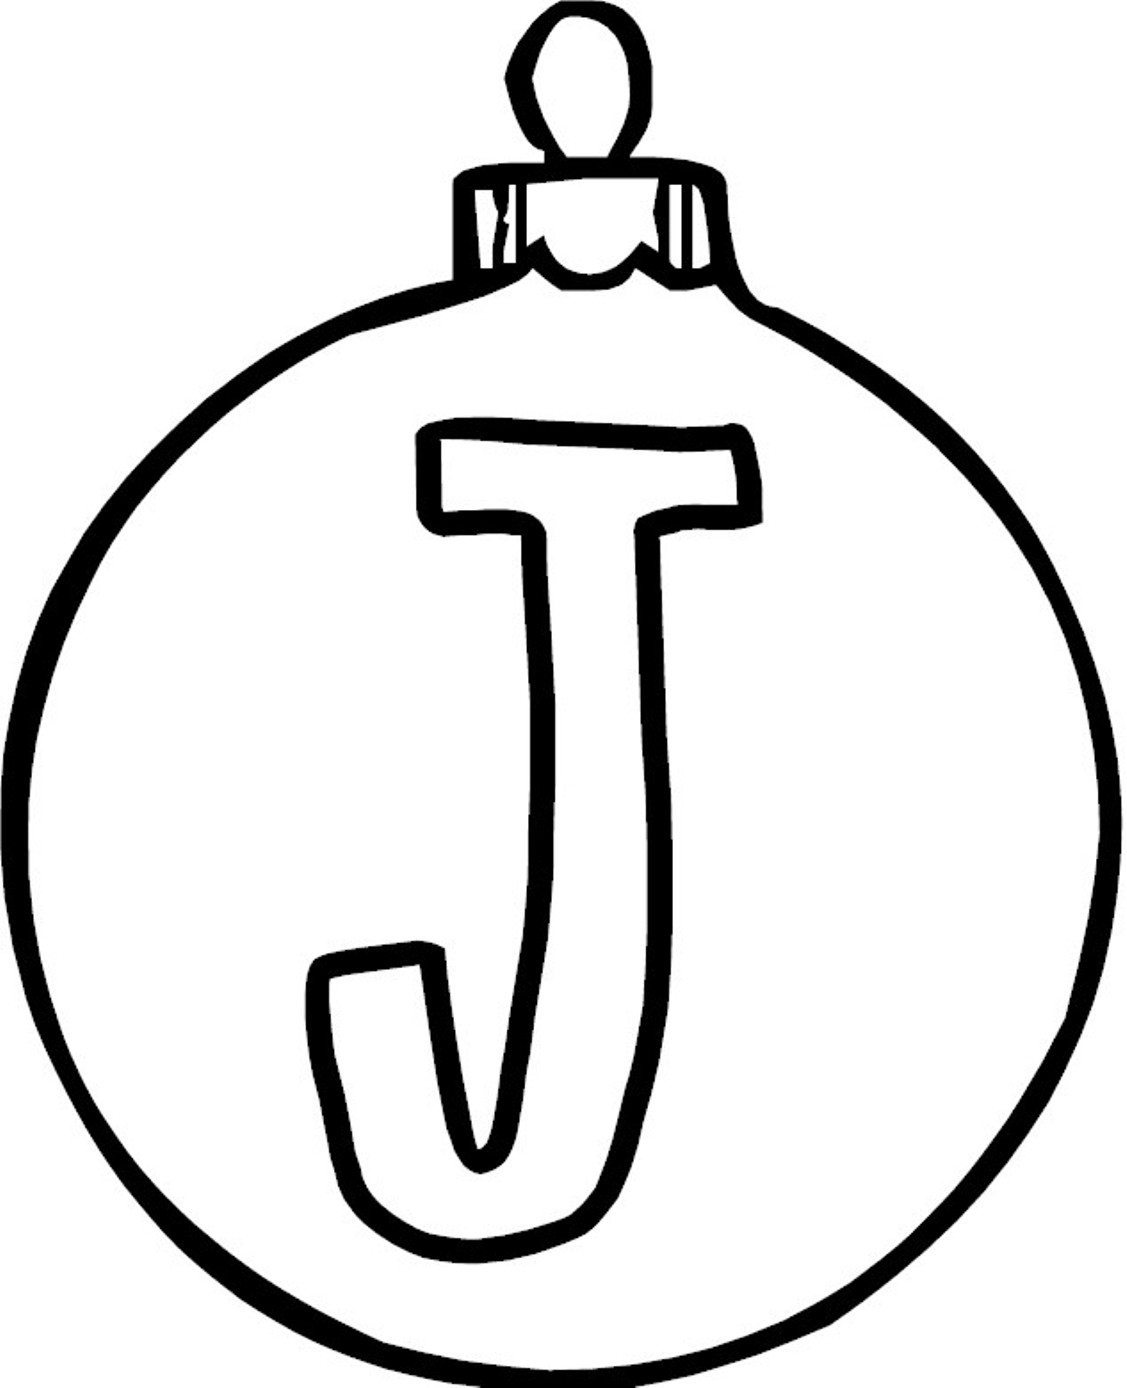 Christmas Decorations Coloring Pages With Ornaments Page Free Printable At Napisy Me